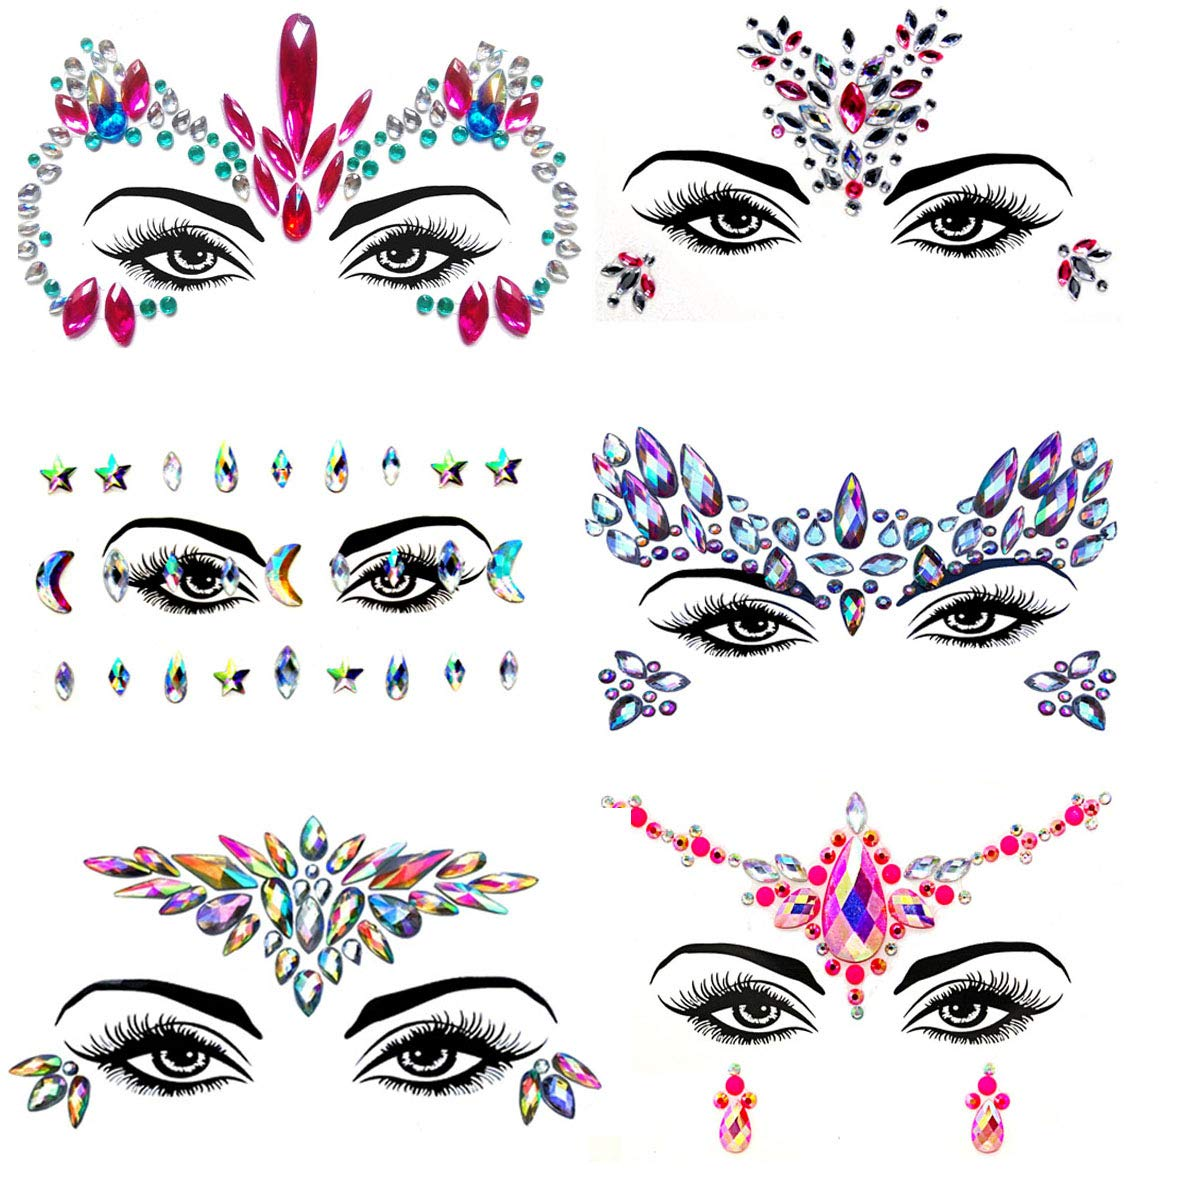 6Sets Temporary Tattoos for women Face Jewels stickers Glitter Face Gems Rhinestones – Eye Body Gems | Rhinestone Stickers | Body Glitter Festival Rave & Party Accessories